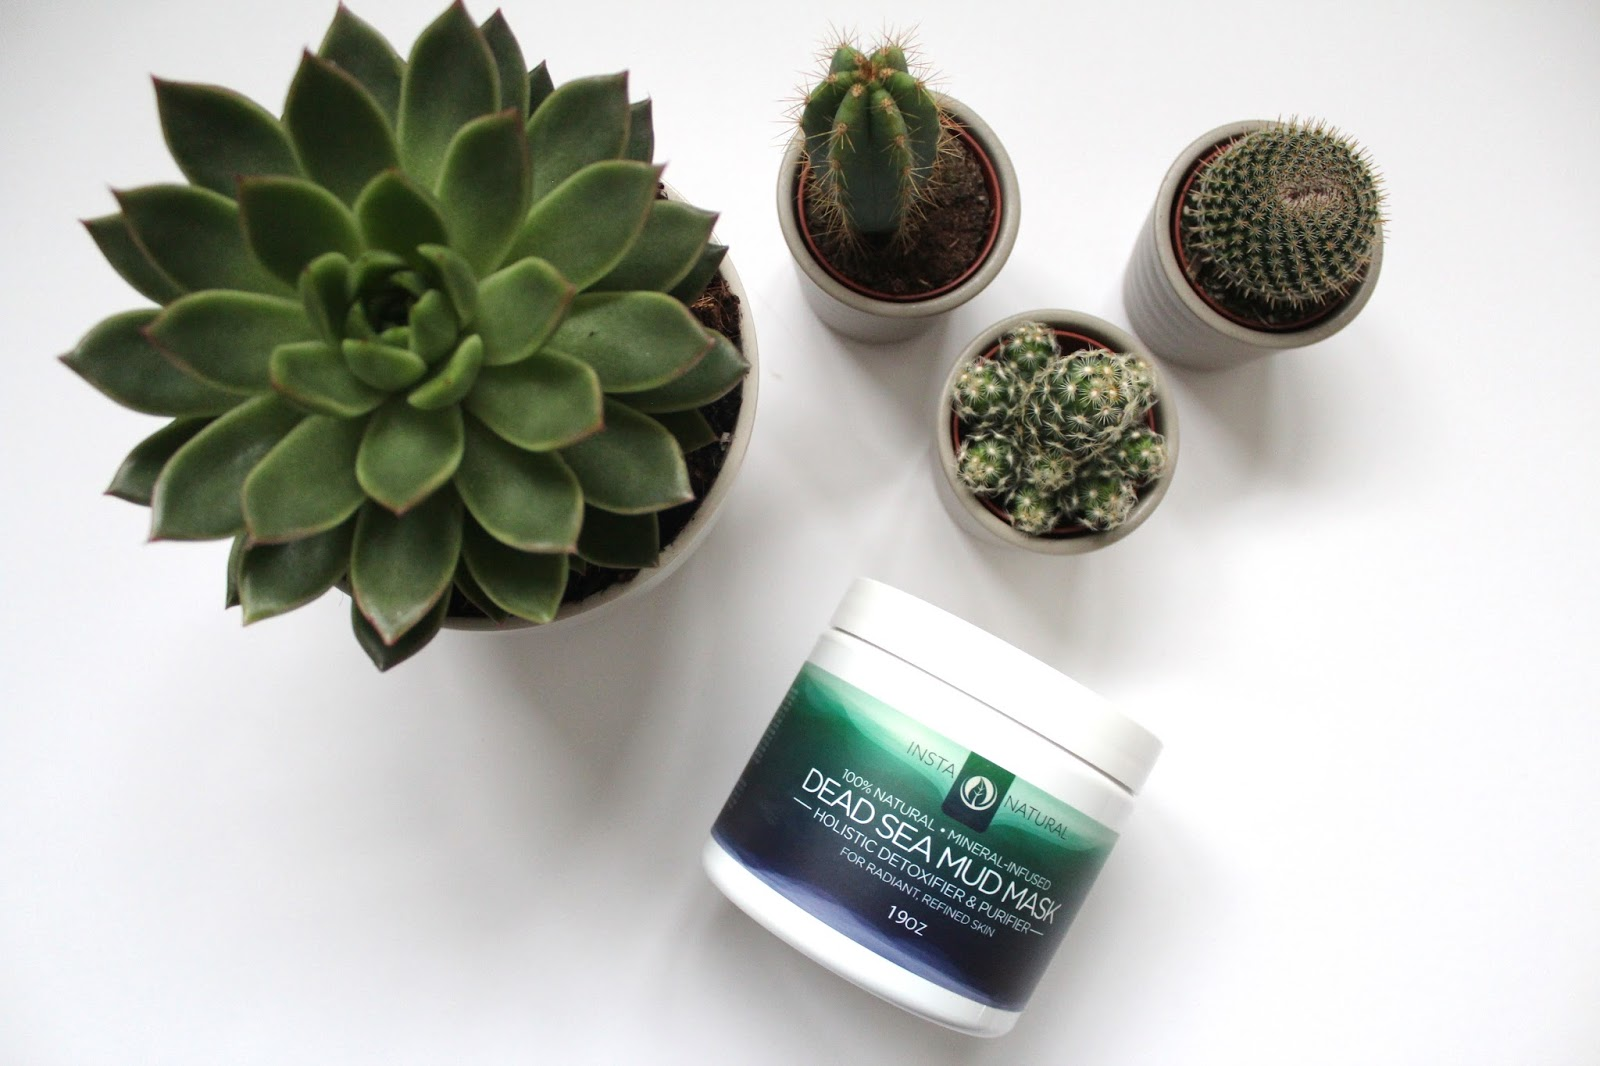 bblogger bbloggers beauty skincare instanatural dead sea mud mask face mask natural ingredients skin amazing cactus review sample kirstie pickering succulent